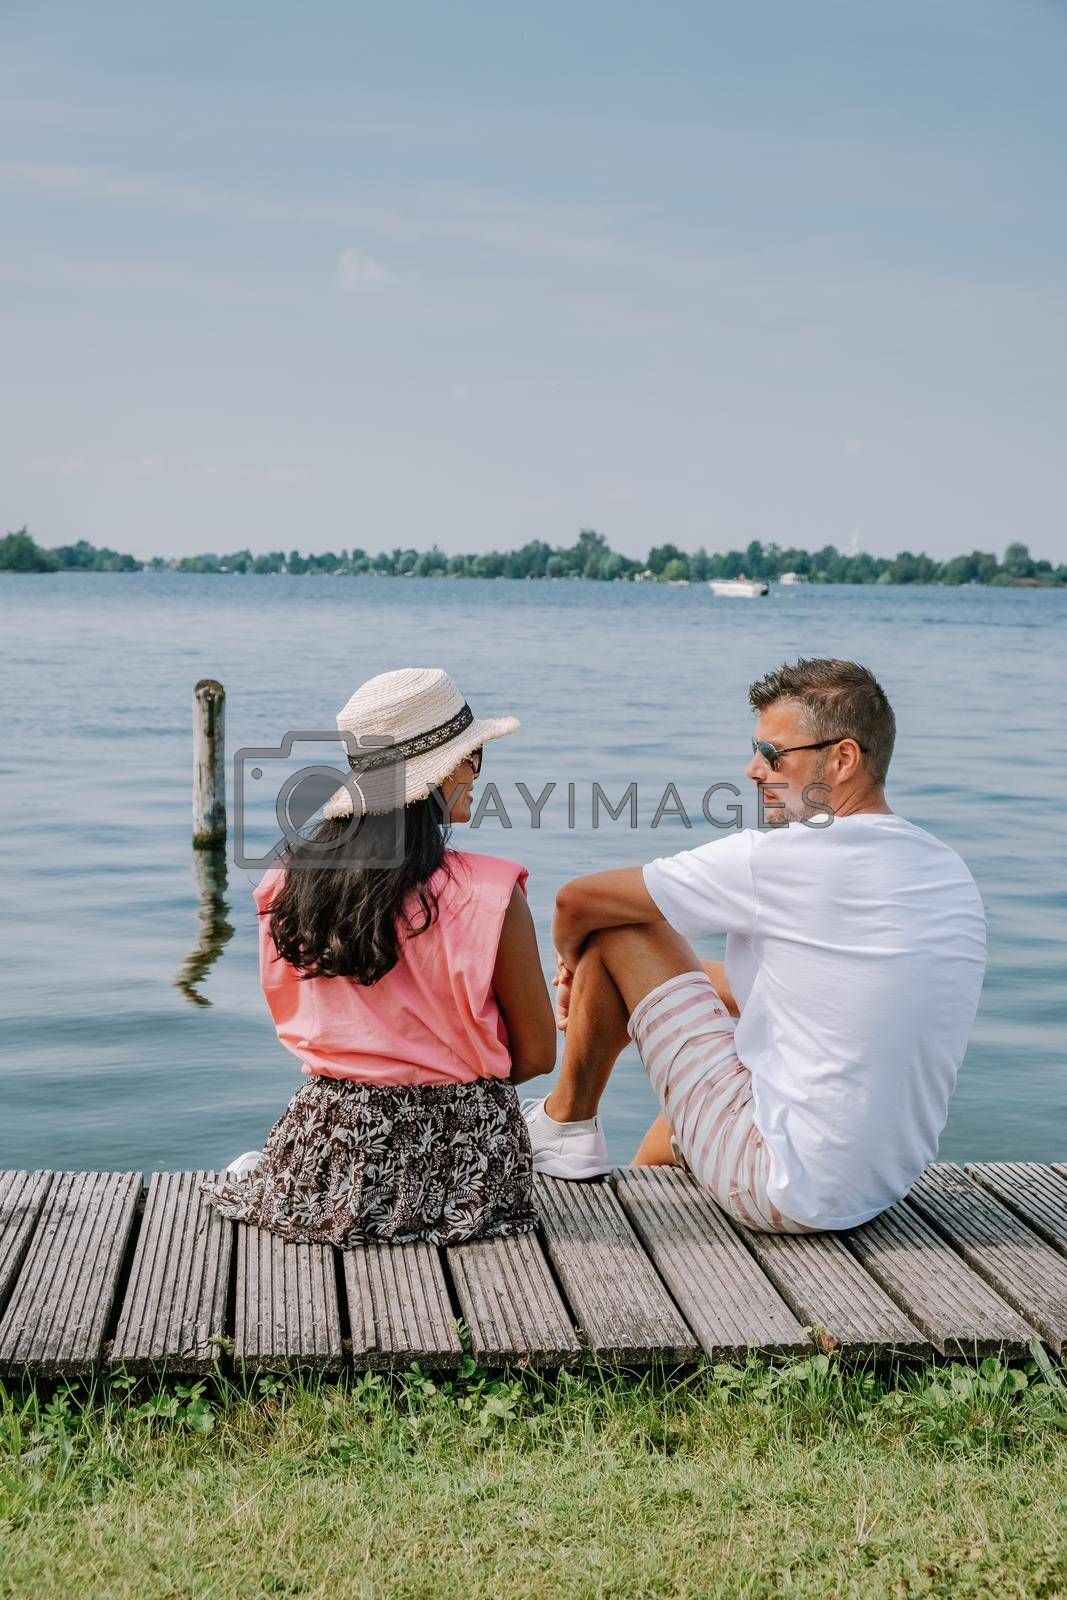 people relaxing in the park by the lake in the Netherlands Vinkeveen near Amsterdam, Vinkeveen is mainly famous for the Vinkeveense Plassen Lakes of Vinkeveen, an area of lakes and sand islands east of the village. It is an important recreational area Netherlands. Europe